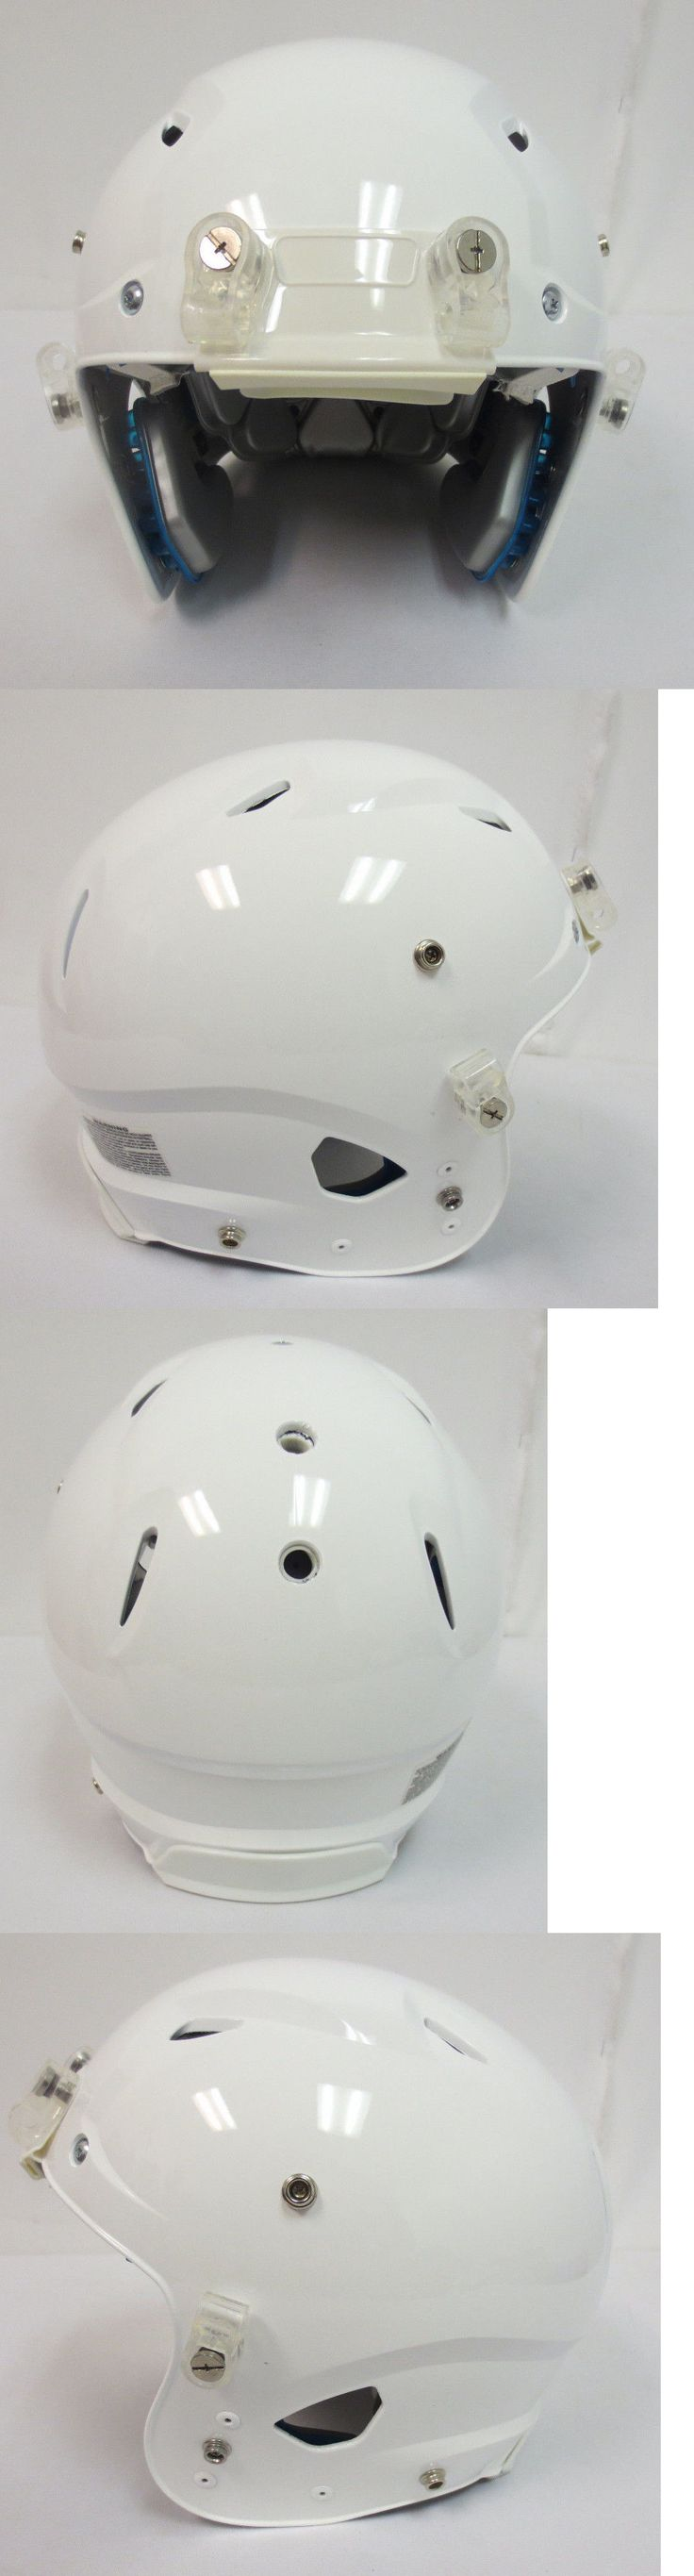 Helmets and Hats 21222: Schutt New White Blue Nfl Football Game Helmet Adult Mens Medium Protective Gear -> BUY IT NOW ONLY: $89.95 on eBay!